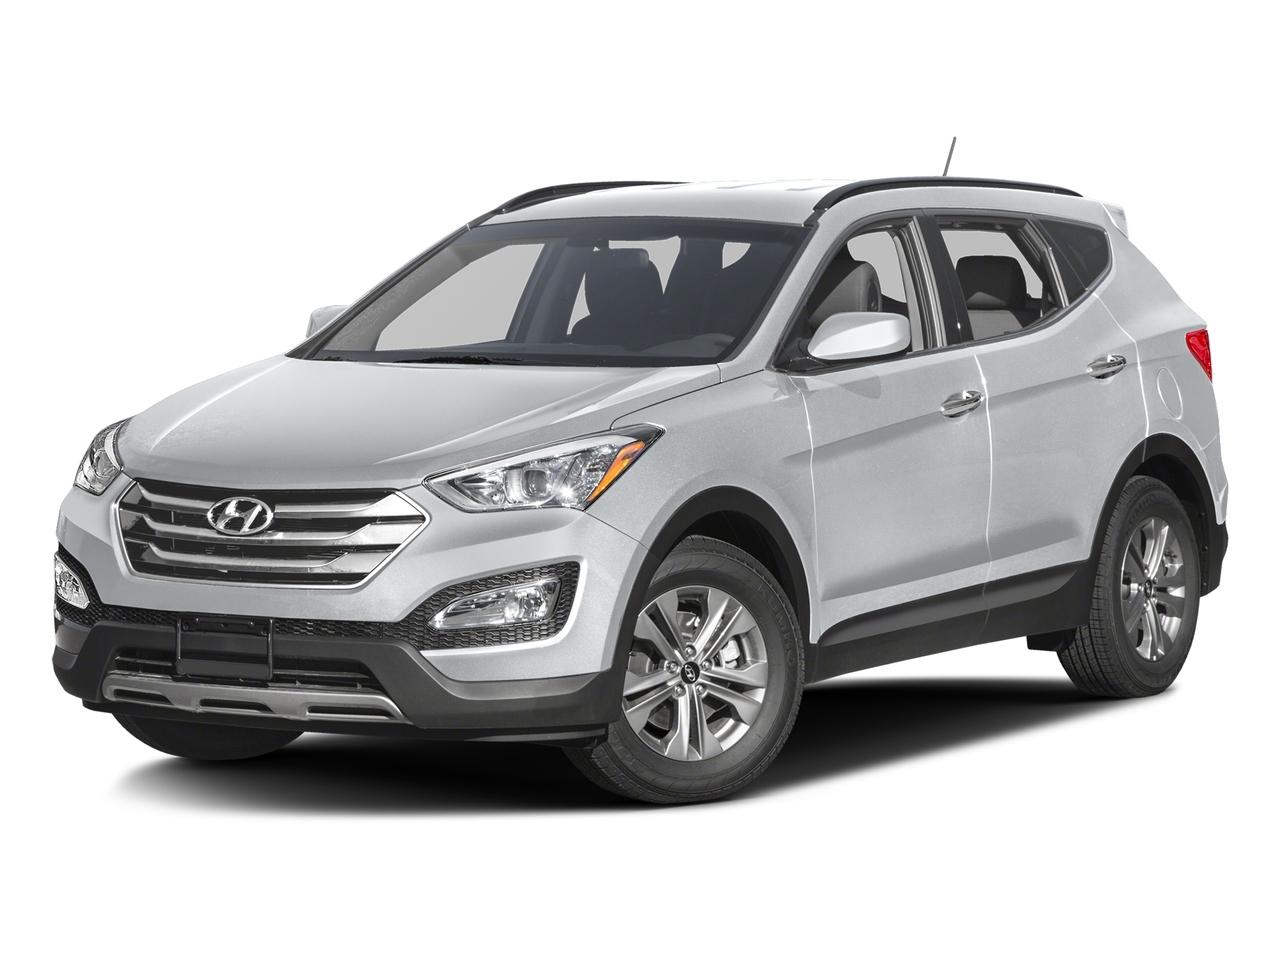 2016 Hyundai Santa Fe Sport Vehicle Photo in Austin, TX 78759